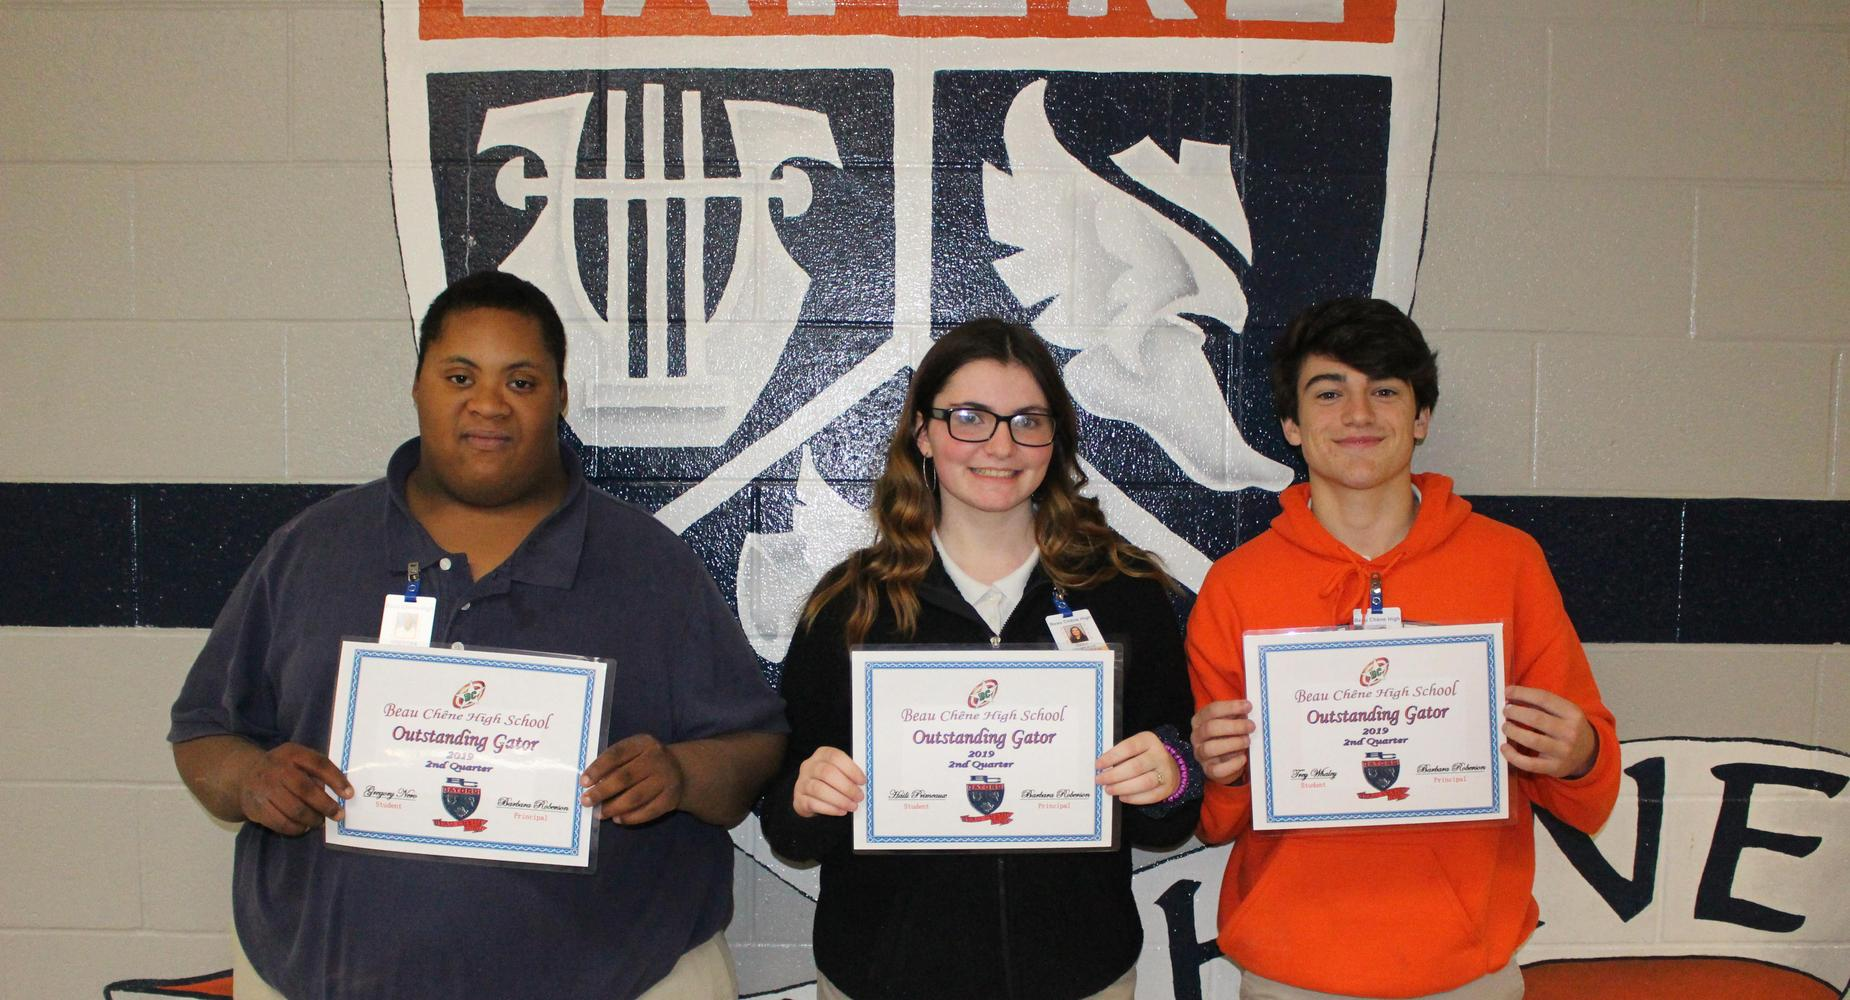 PBIS - Outstanding Gators:  Gregory Nero, Haili Primeaux and Trey Whaley